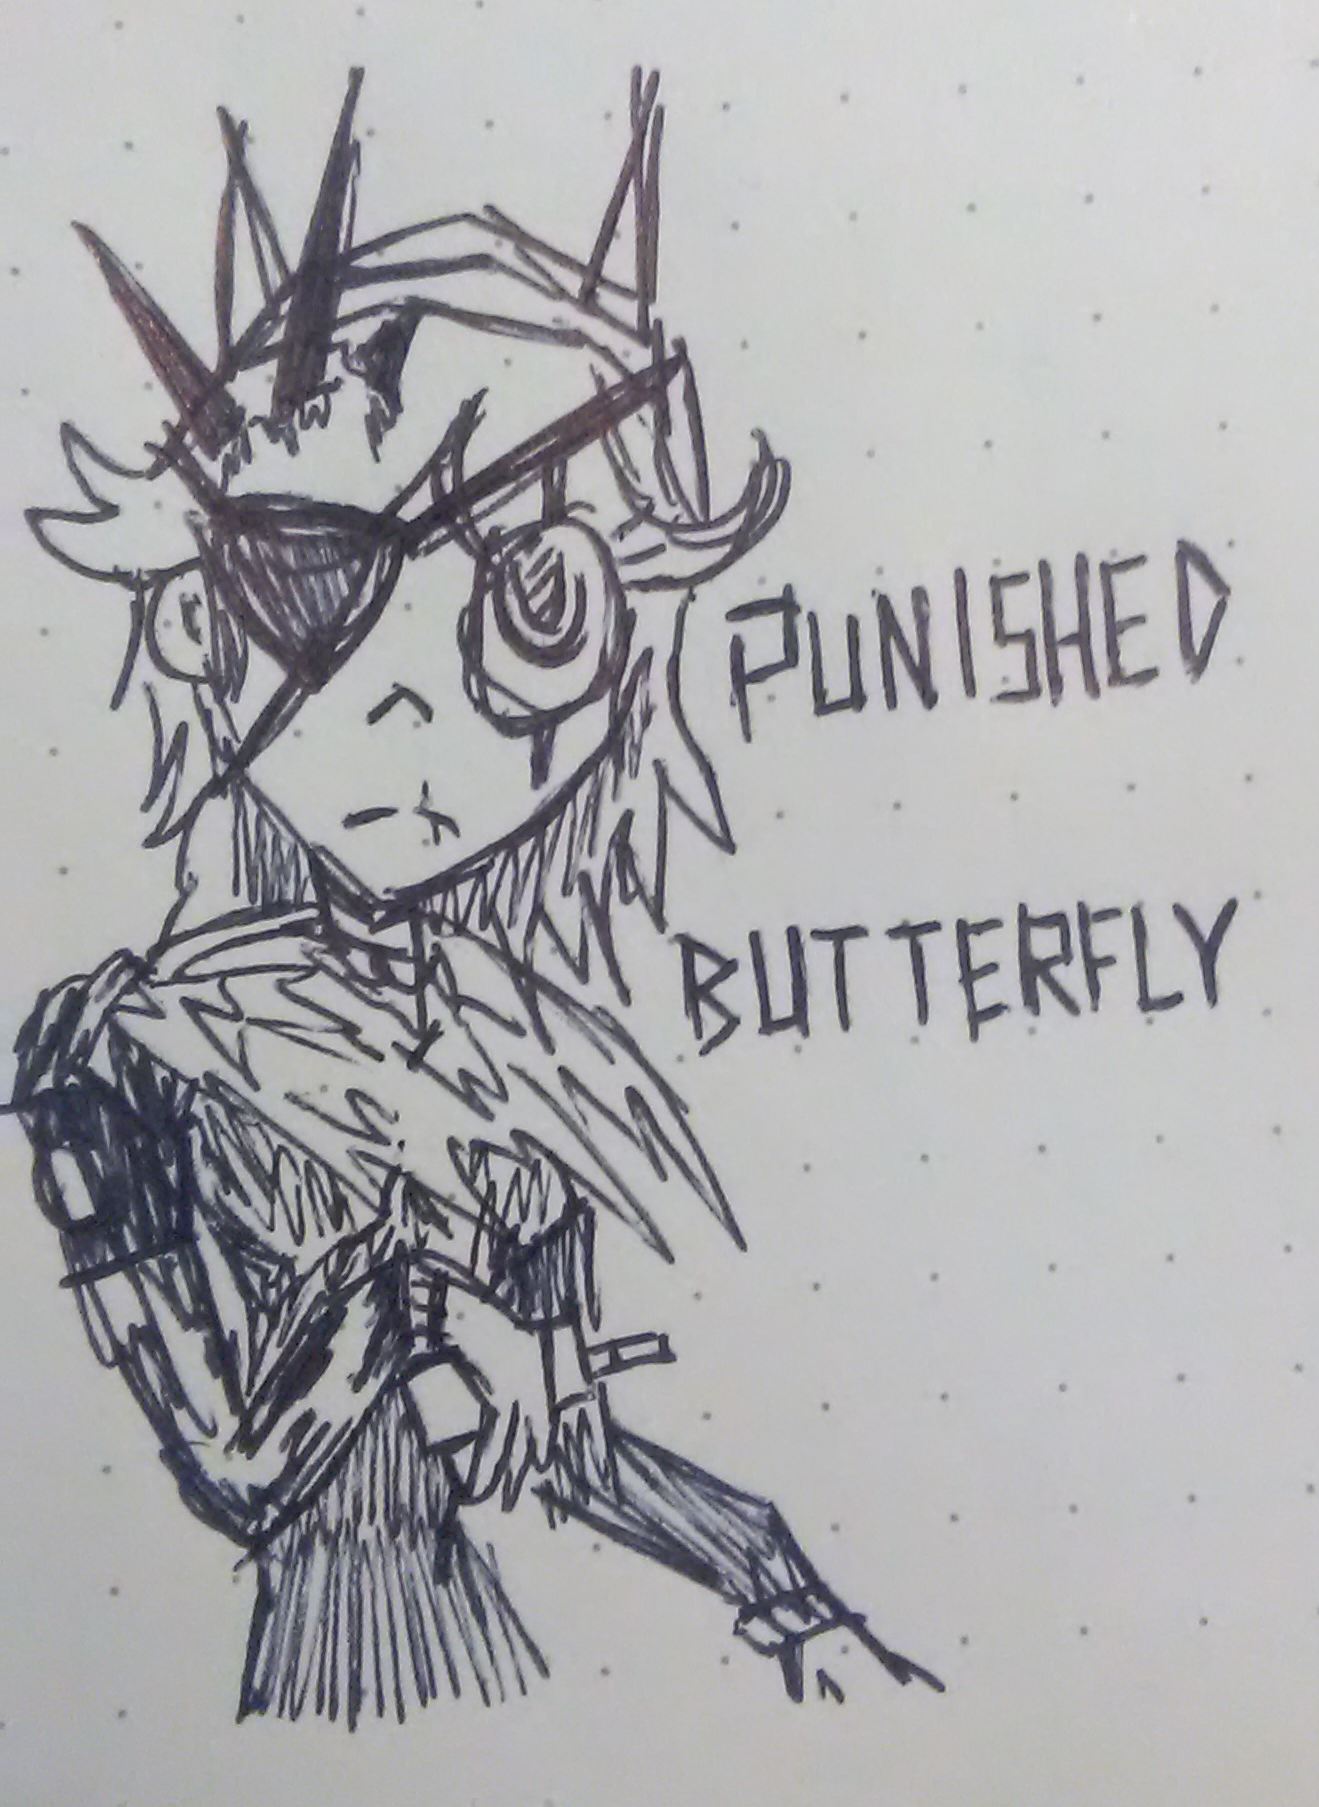 Punished Butterfly And Other Oddities